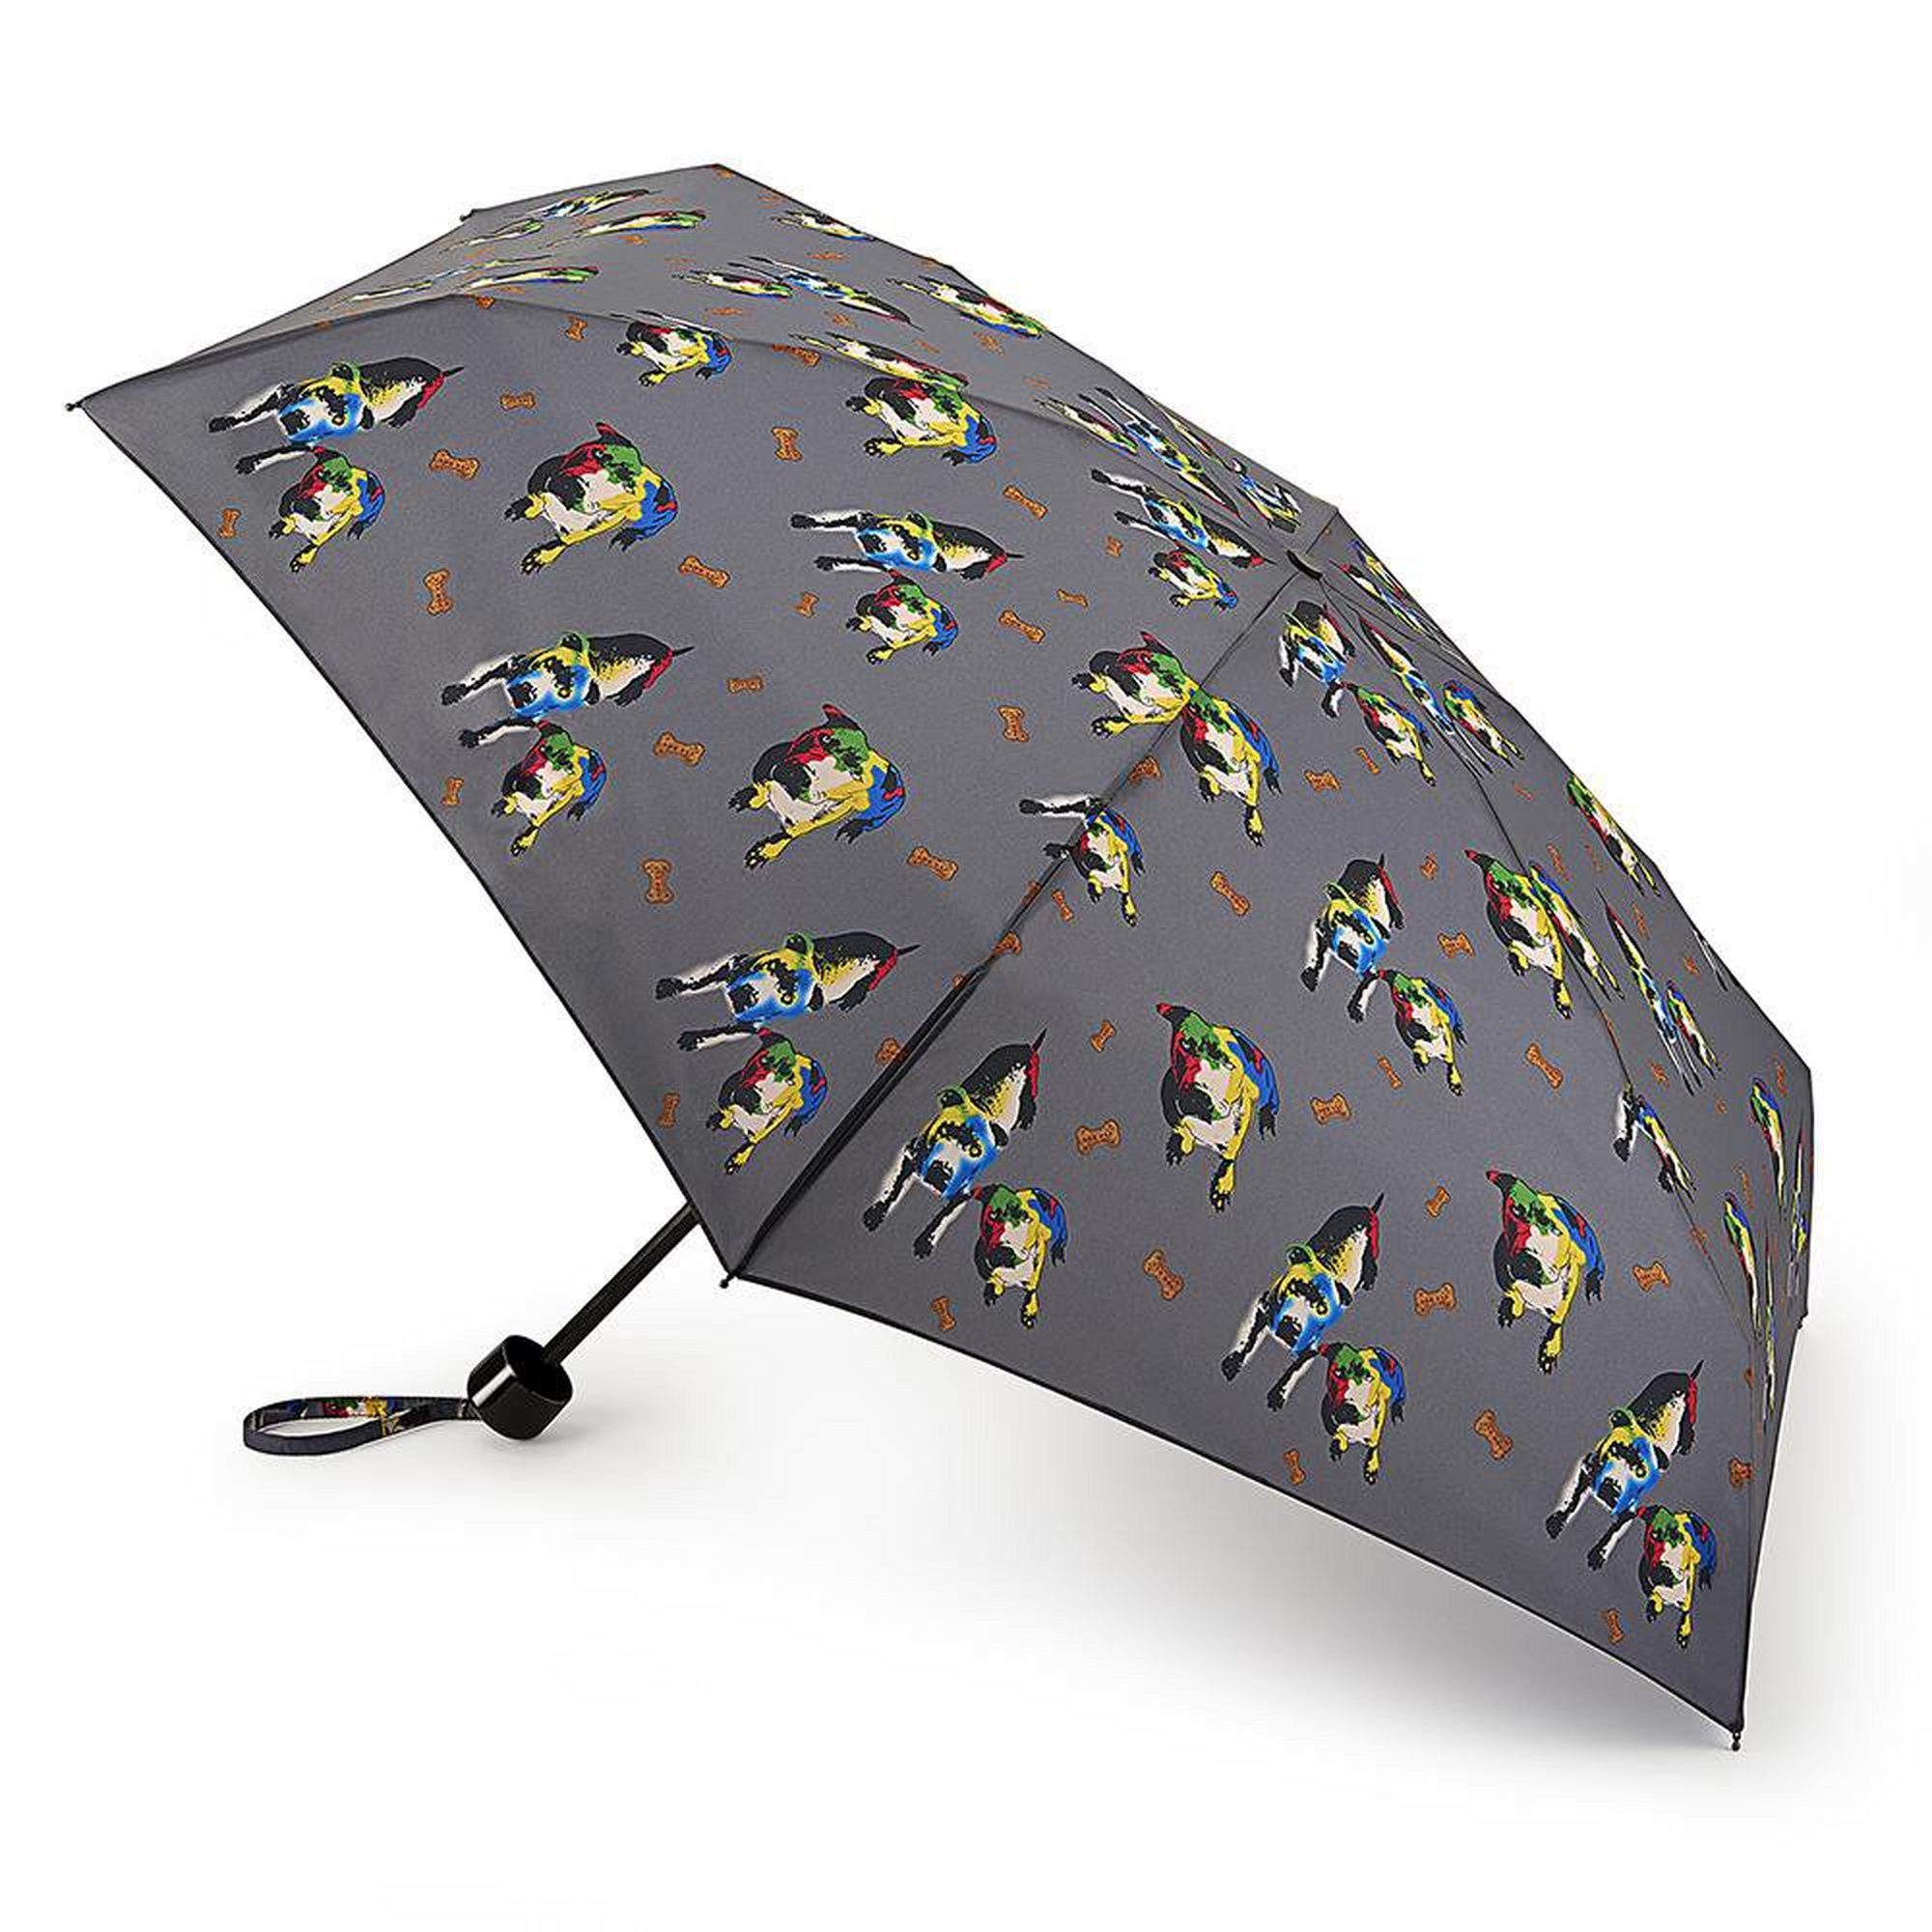 Image of Fulton Prince and Chico SOHO-2 Umbrella